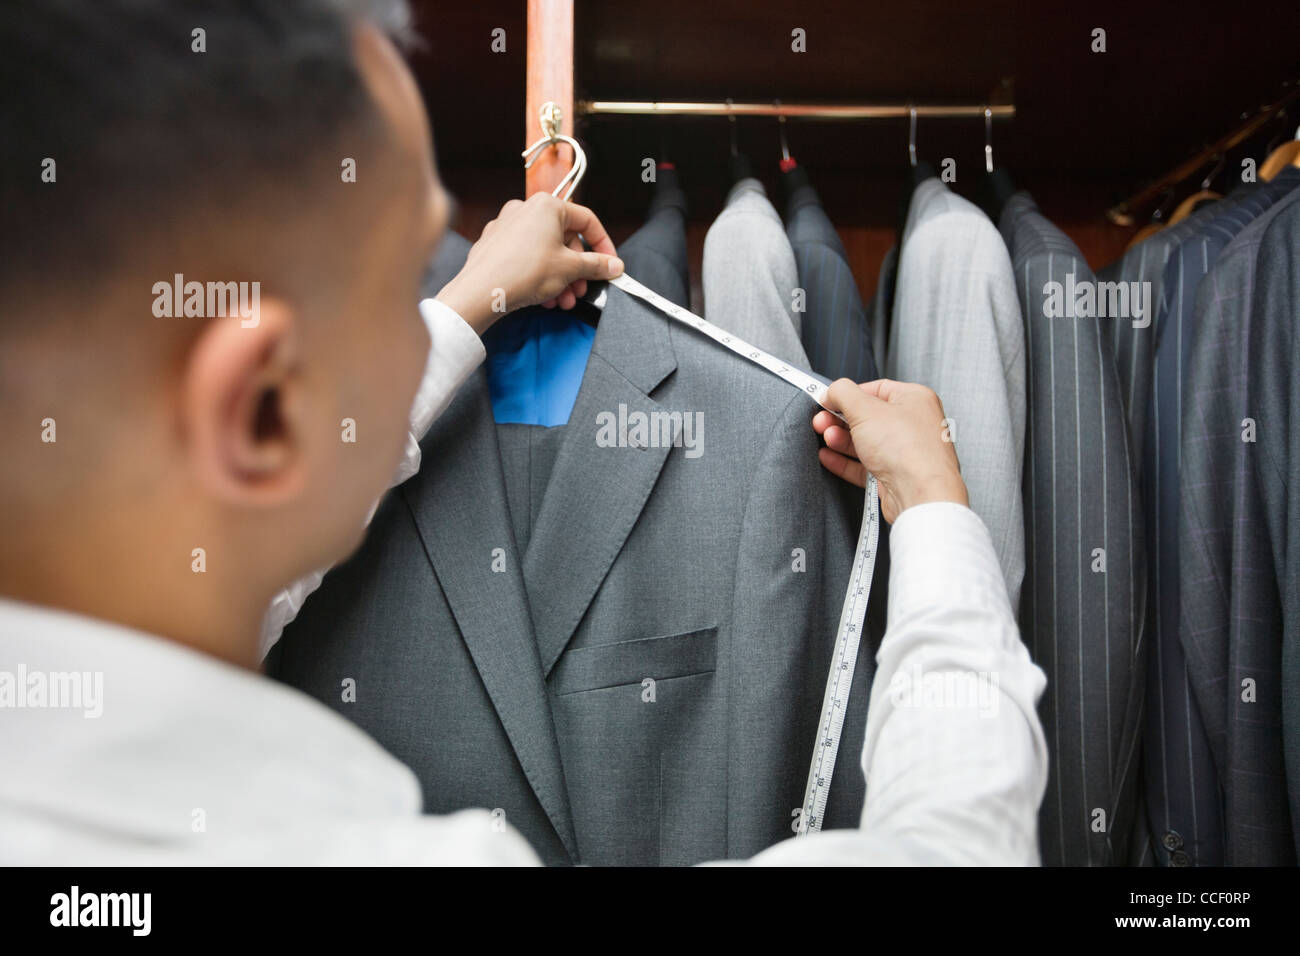 Tailor measuring shoulder of the suit - Stock Image